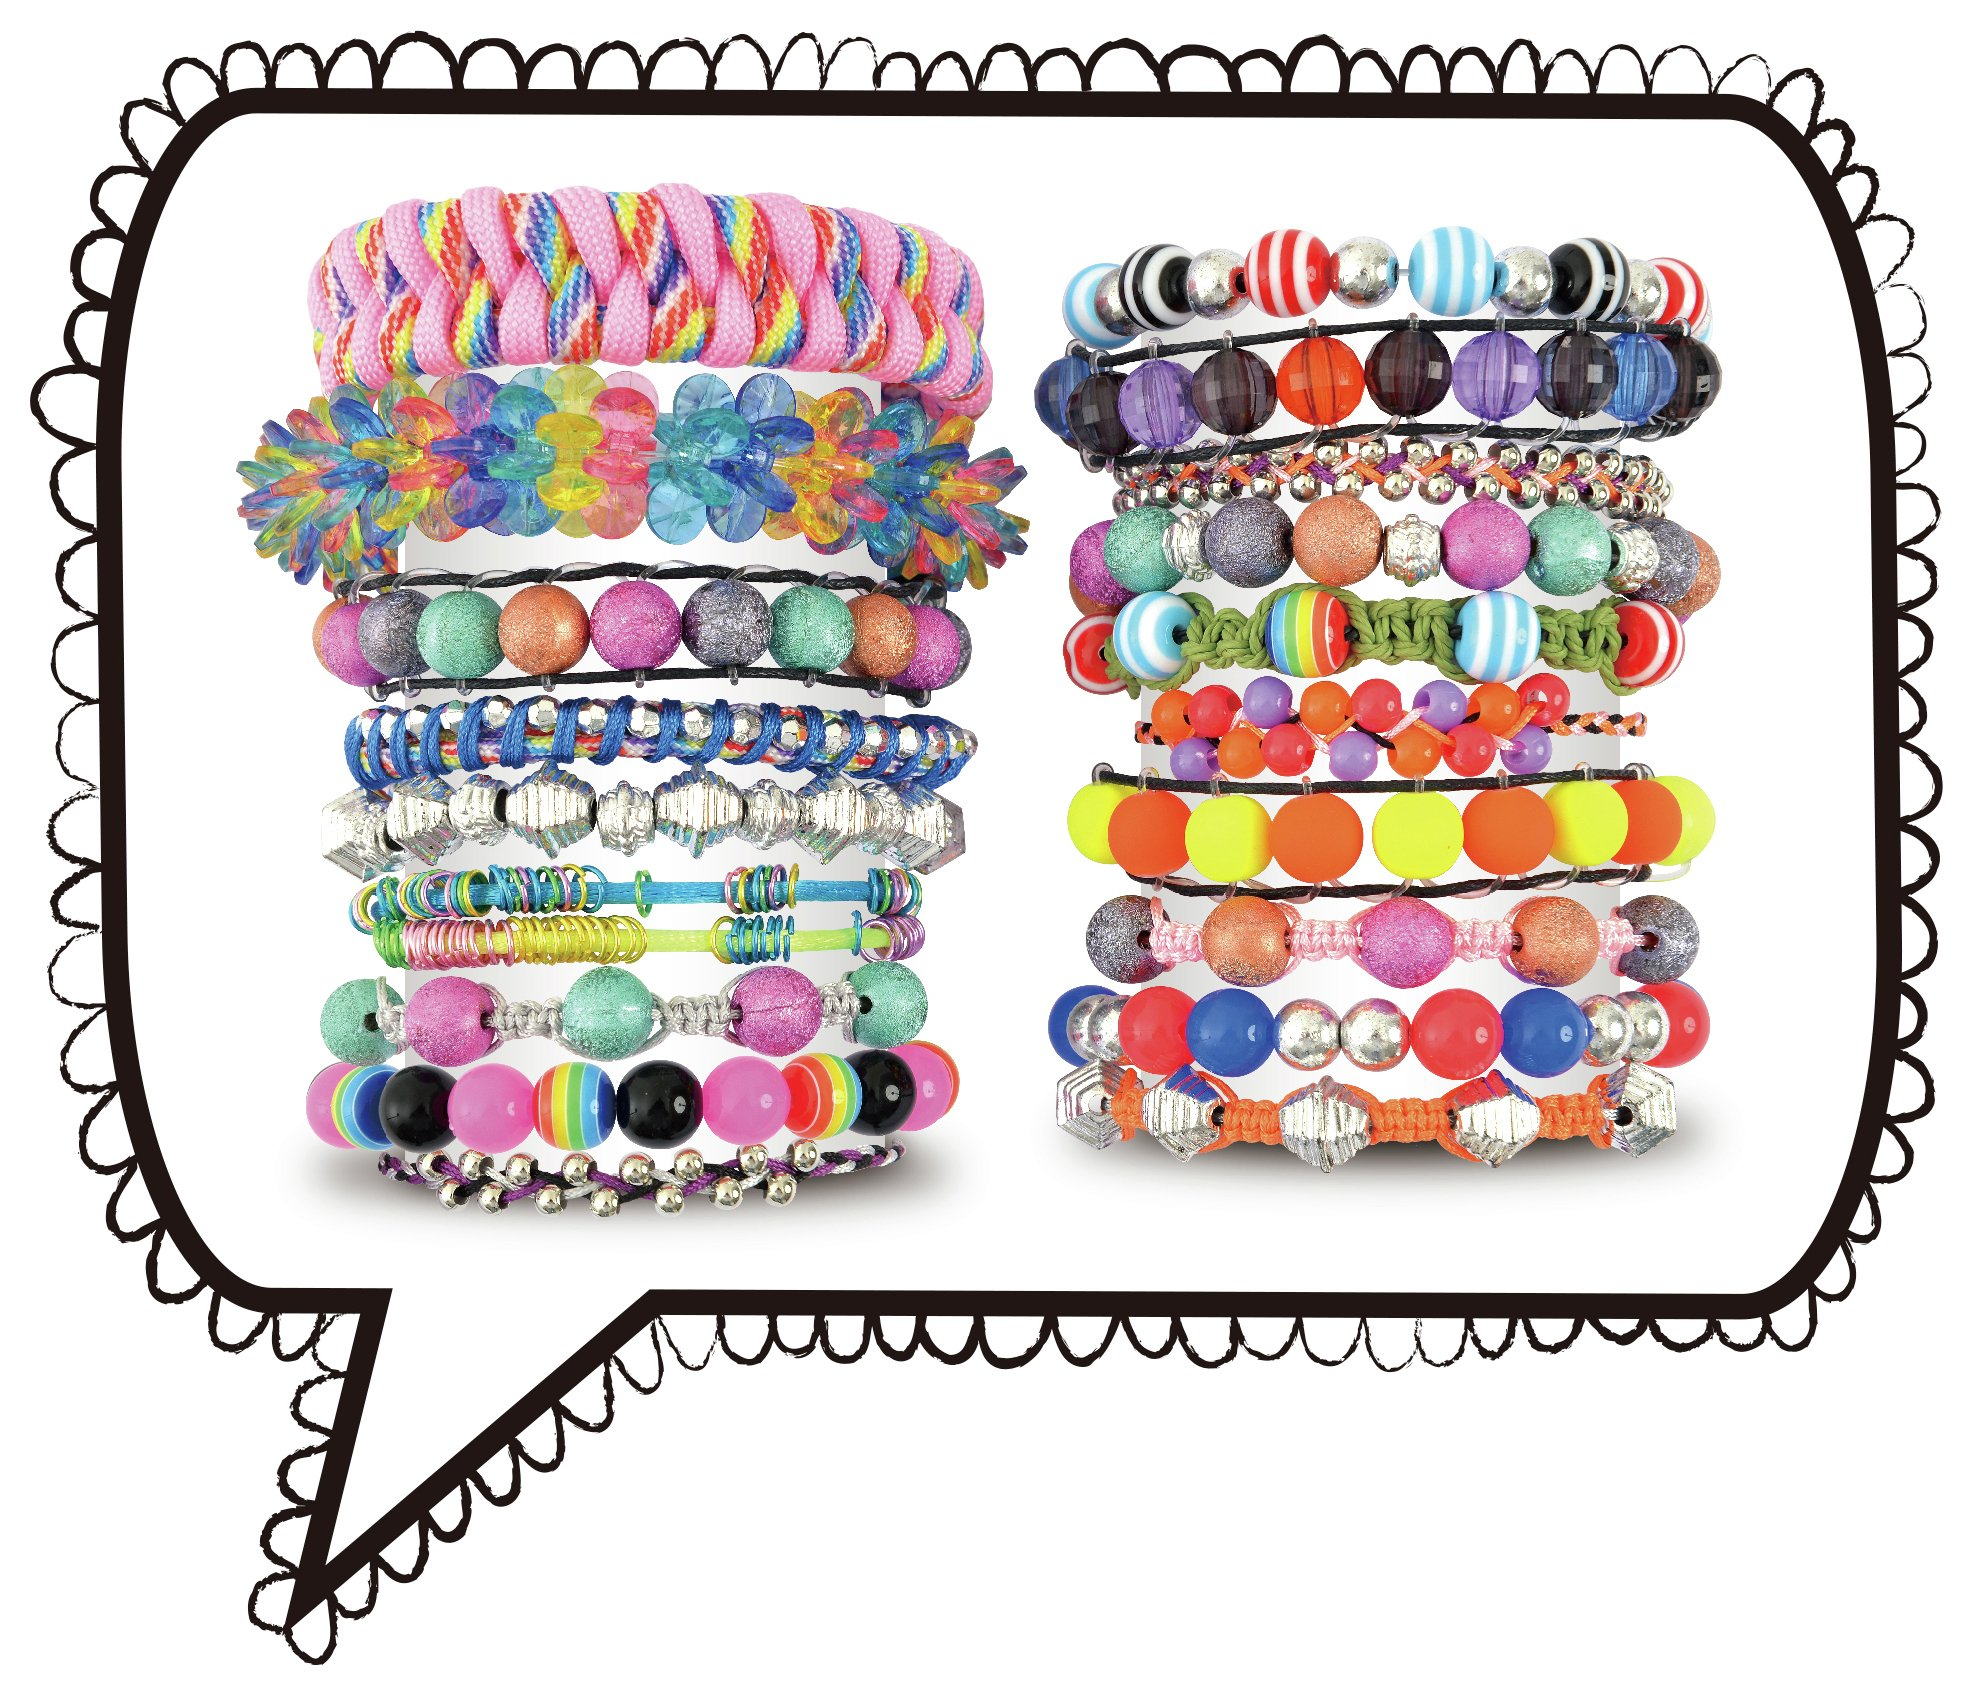 Image of Express Yourself Bead and Braid Party.